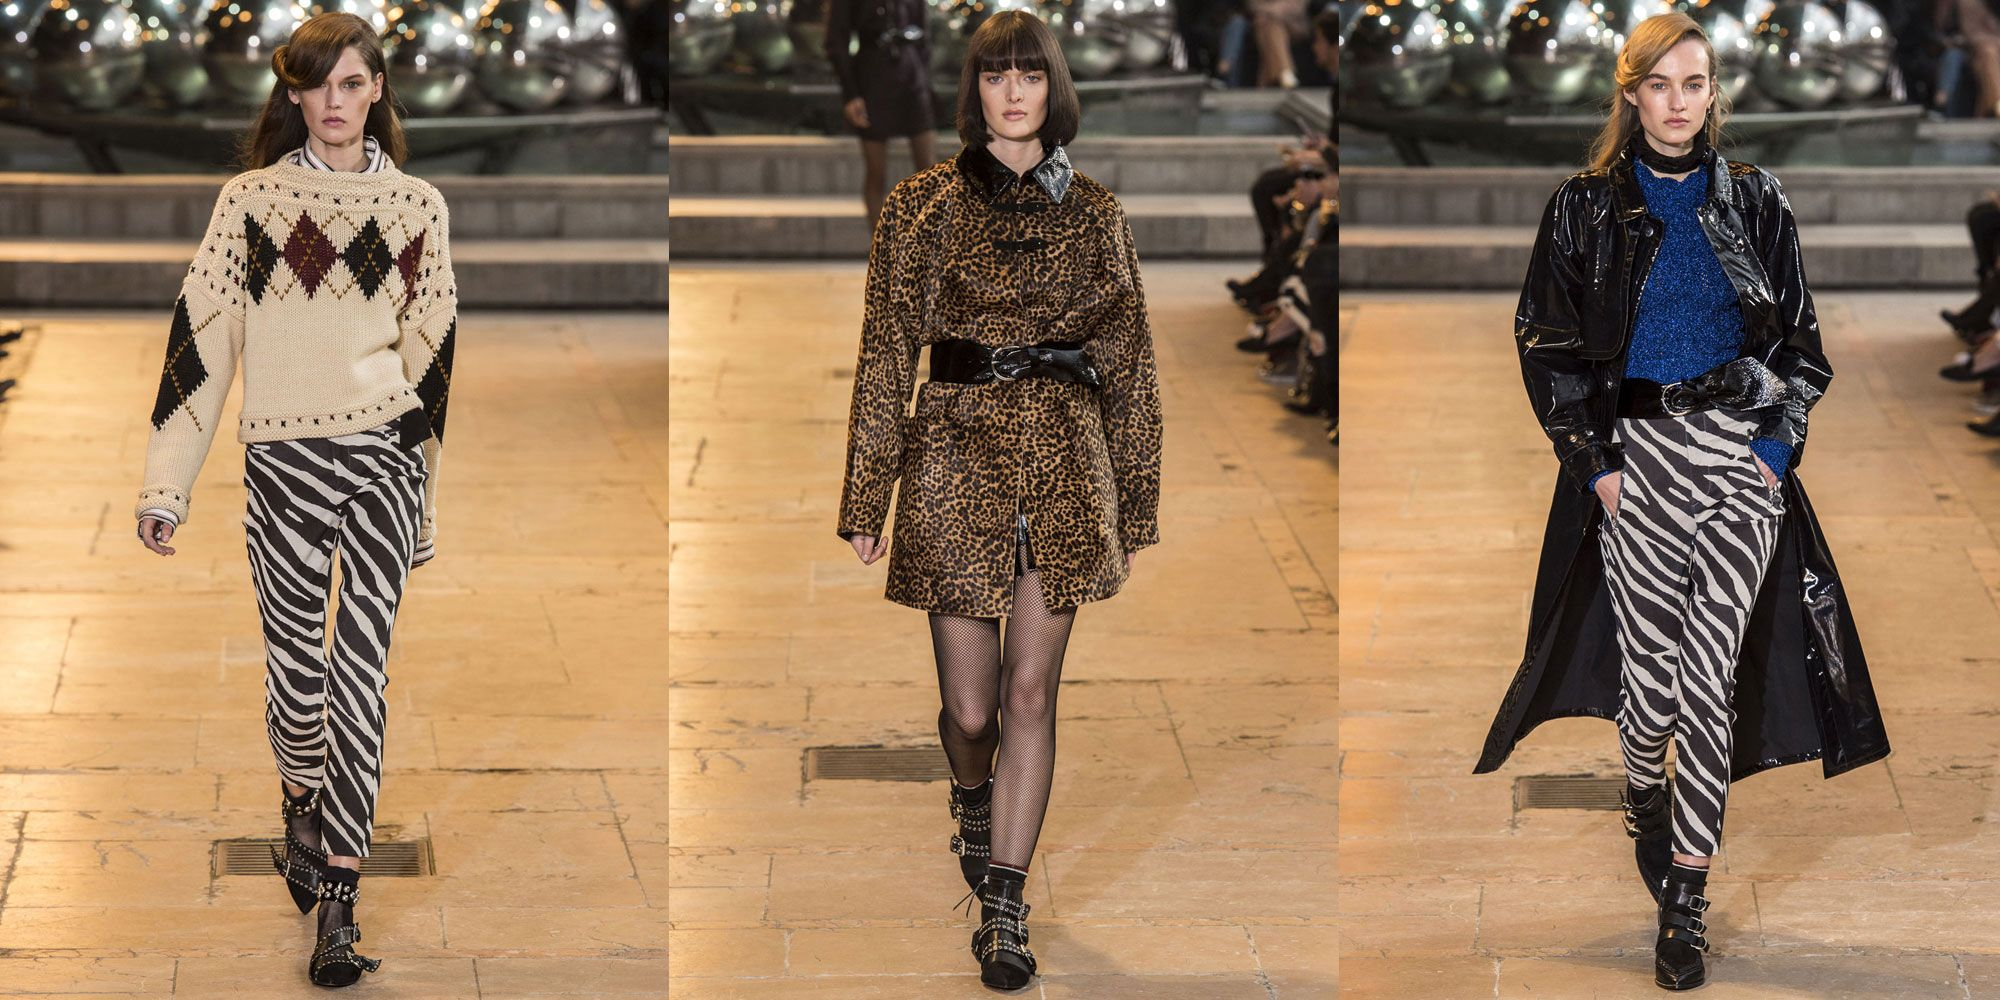 <p>Marant is endorsing leopard spots and zebra stripes for fall. </p>